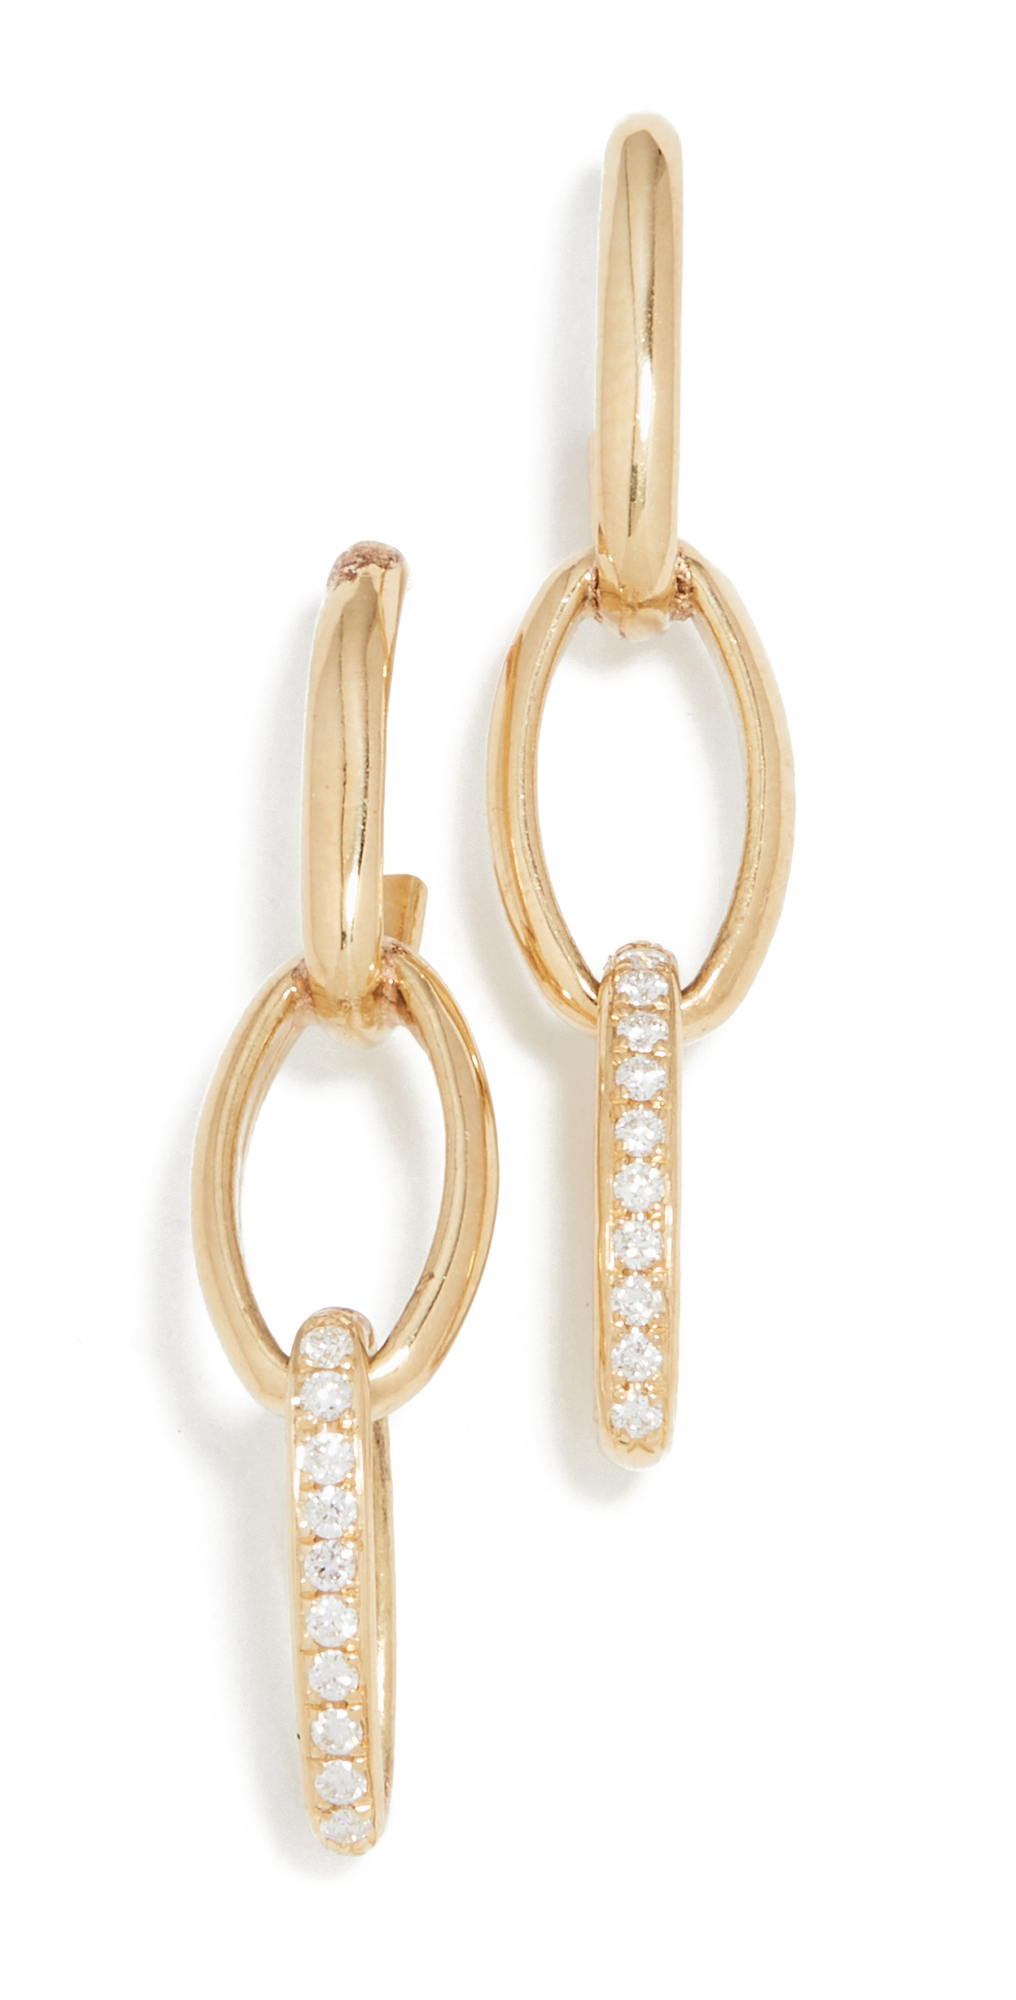 3 Edith Link Studs with Diamond Pave Accent